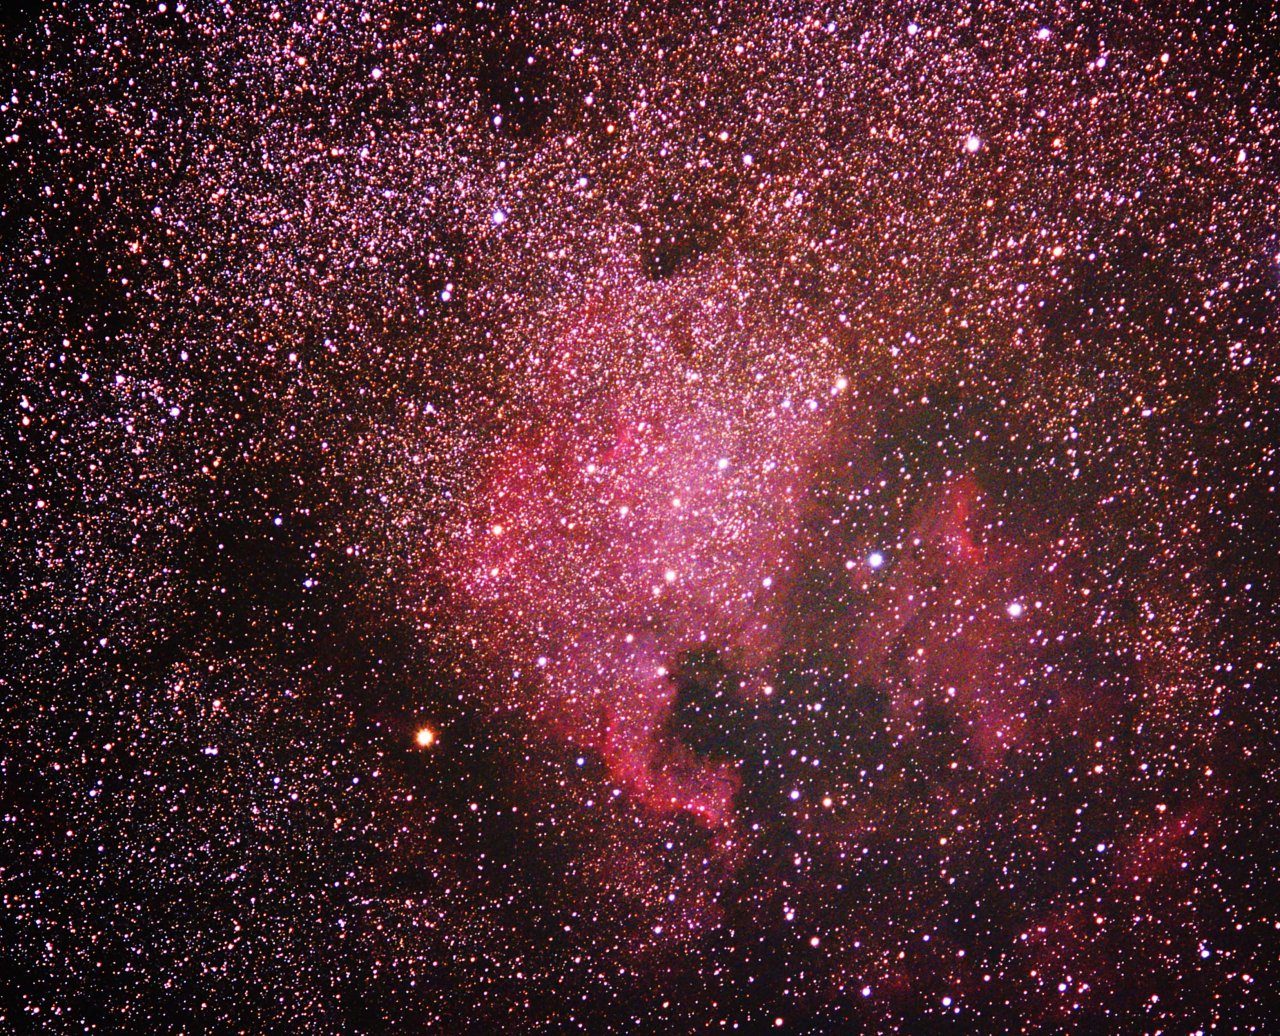 NGC7000, North American Nebula